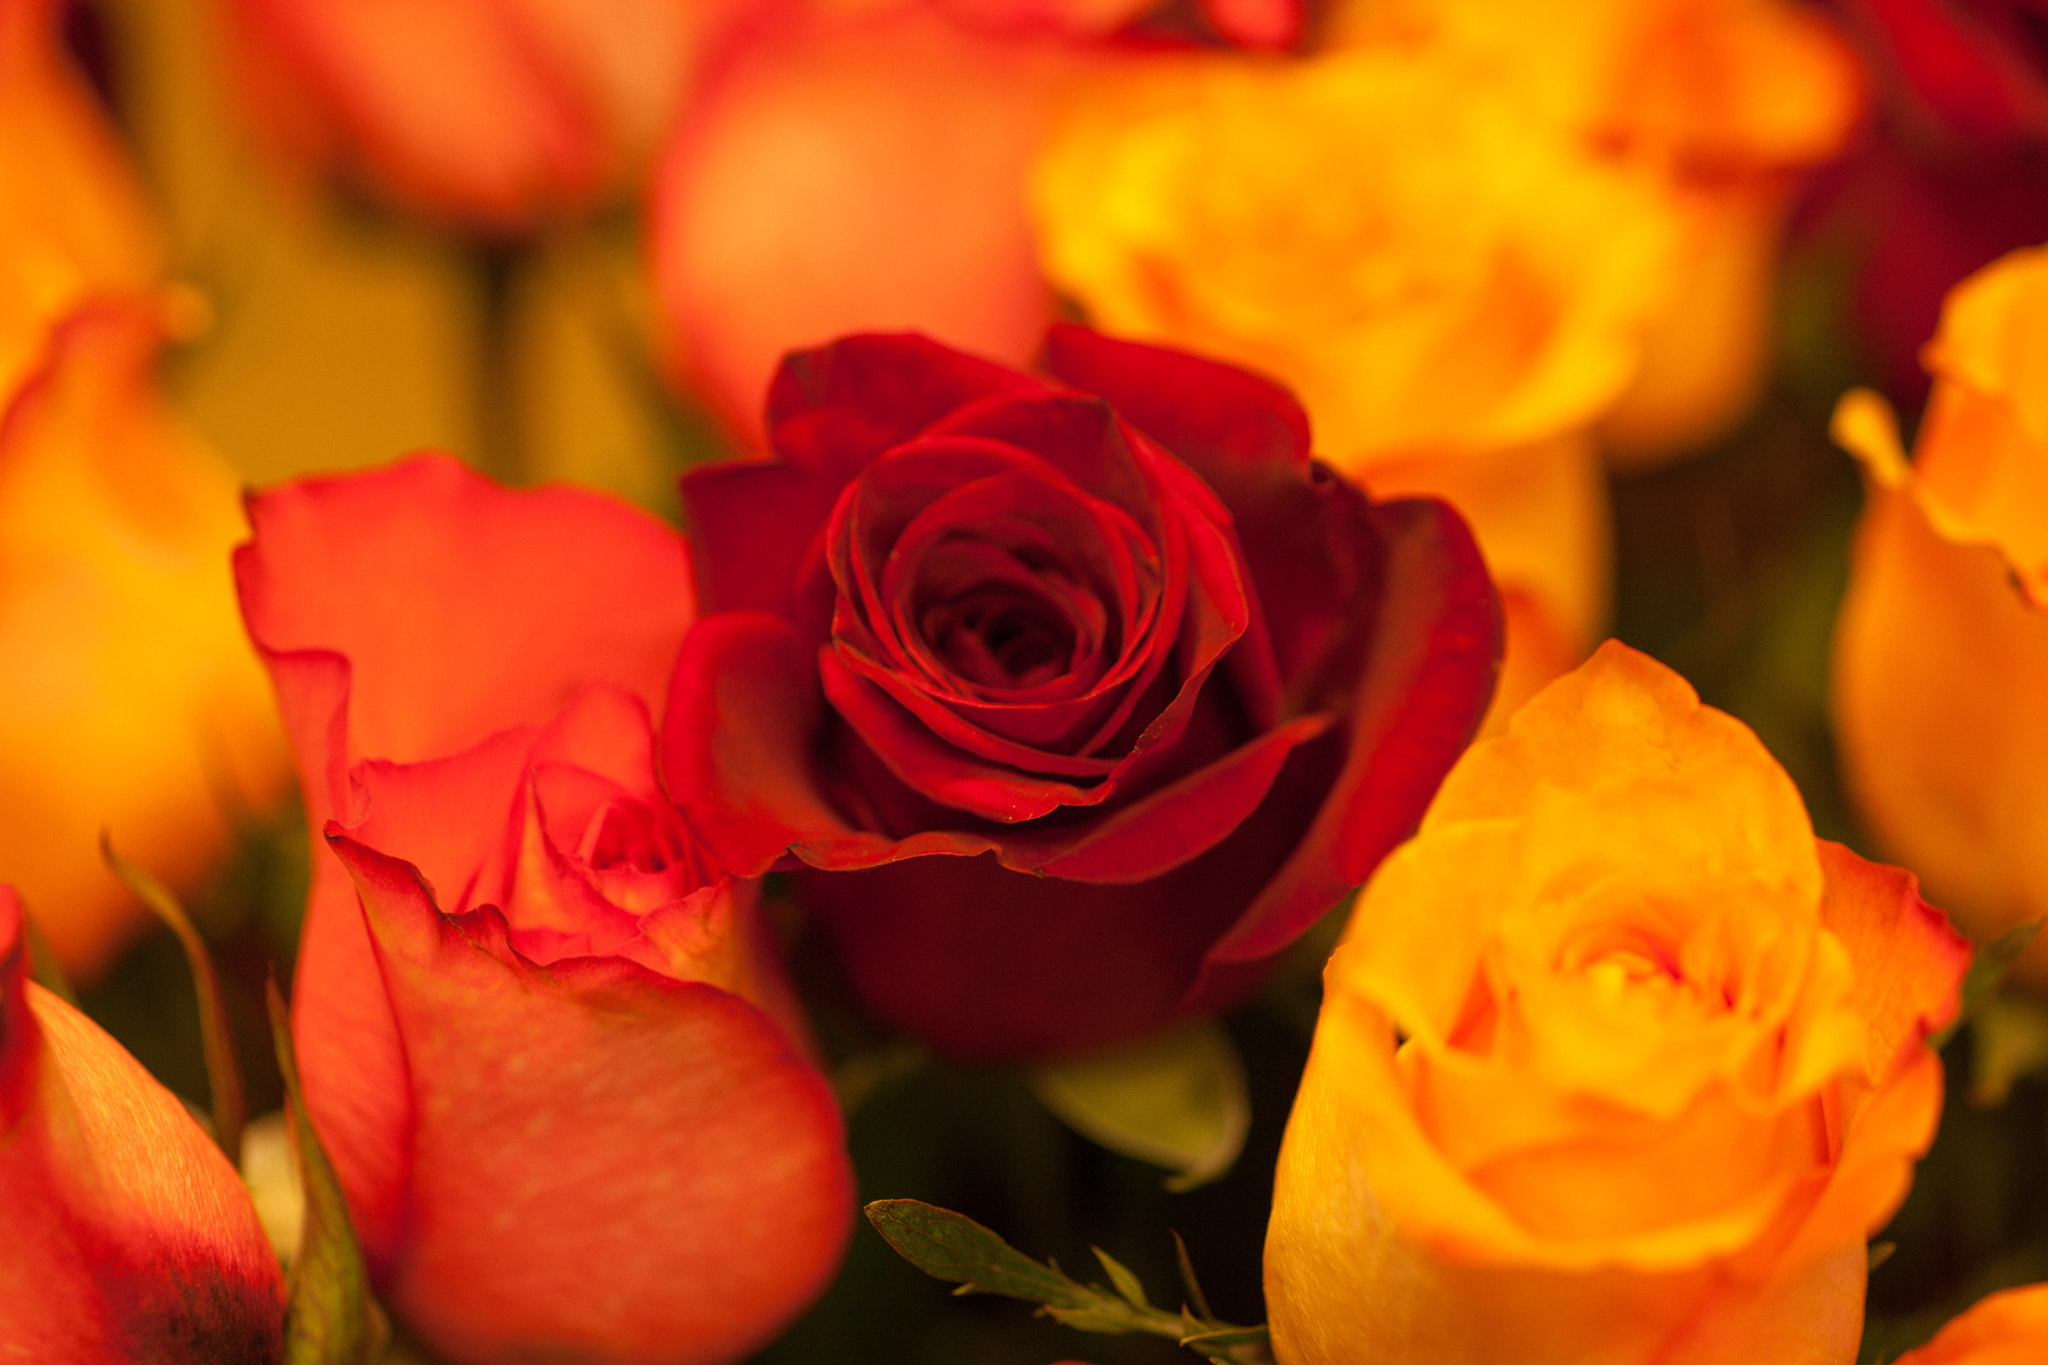 Photograph Roses by Jim Perry on 500px